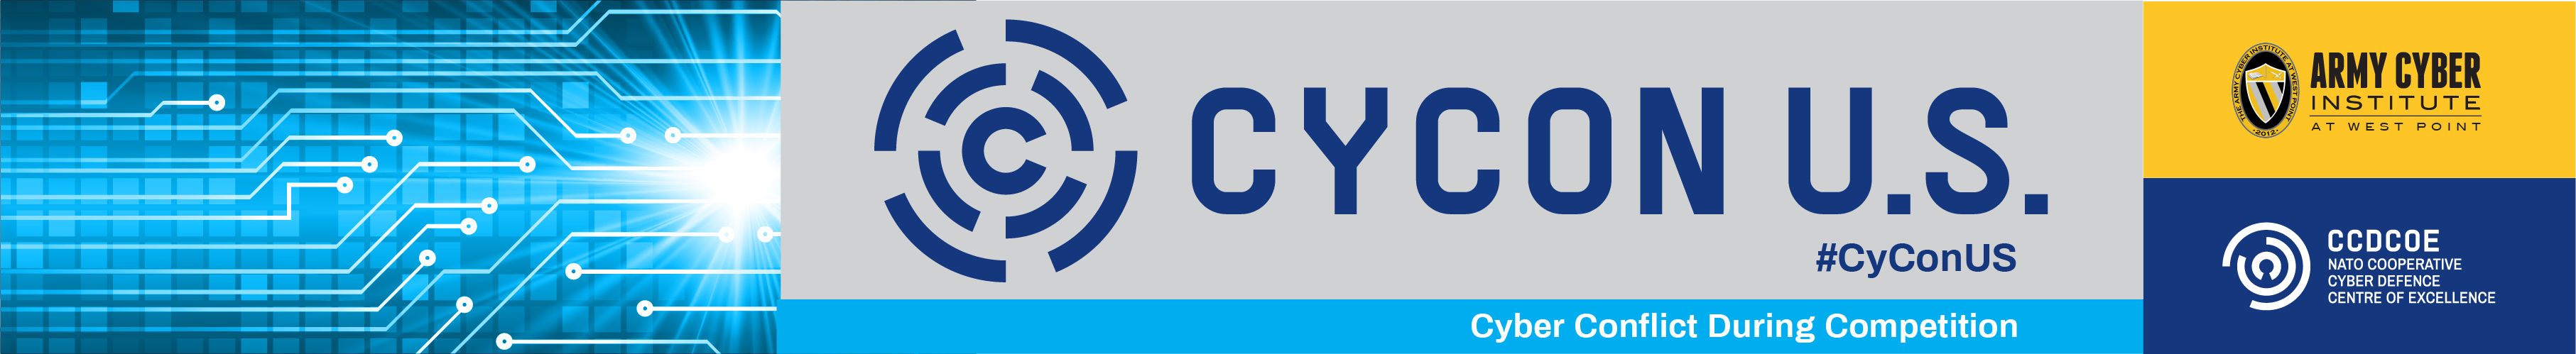 2019 International Conference on Cyber Conflict (CyCon U.S.)